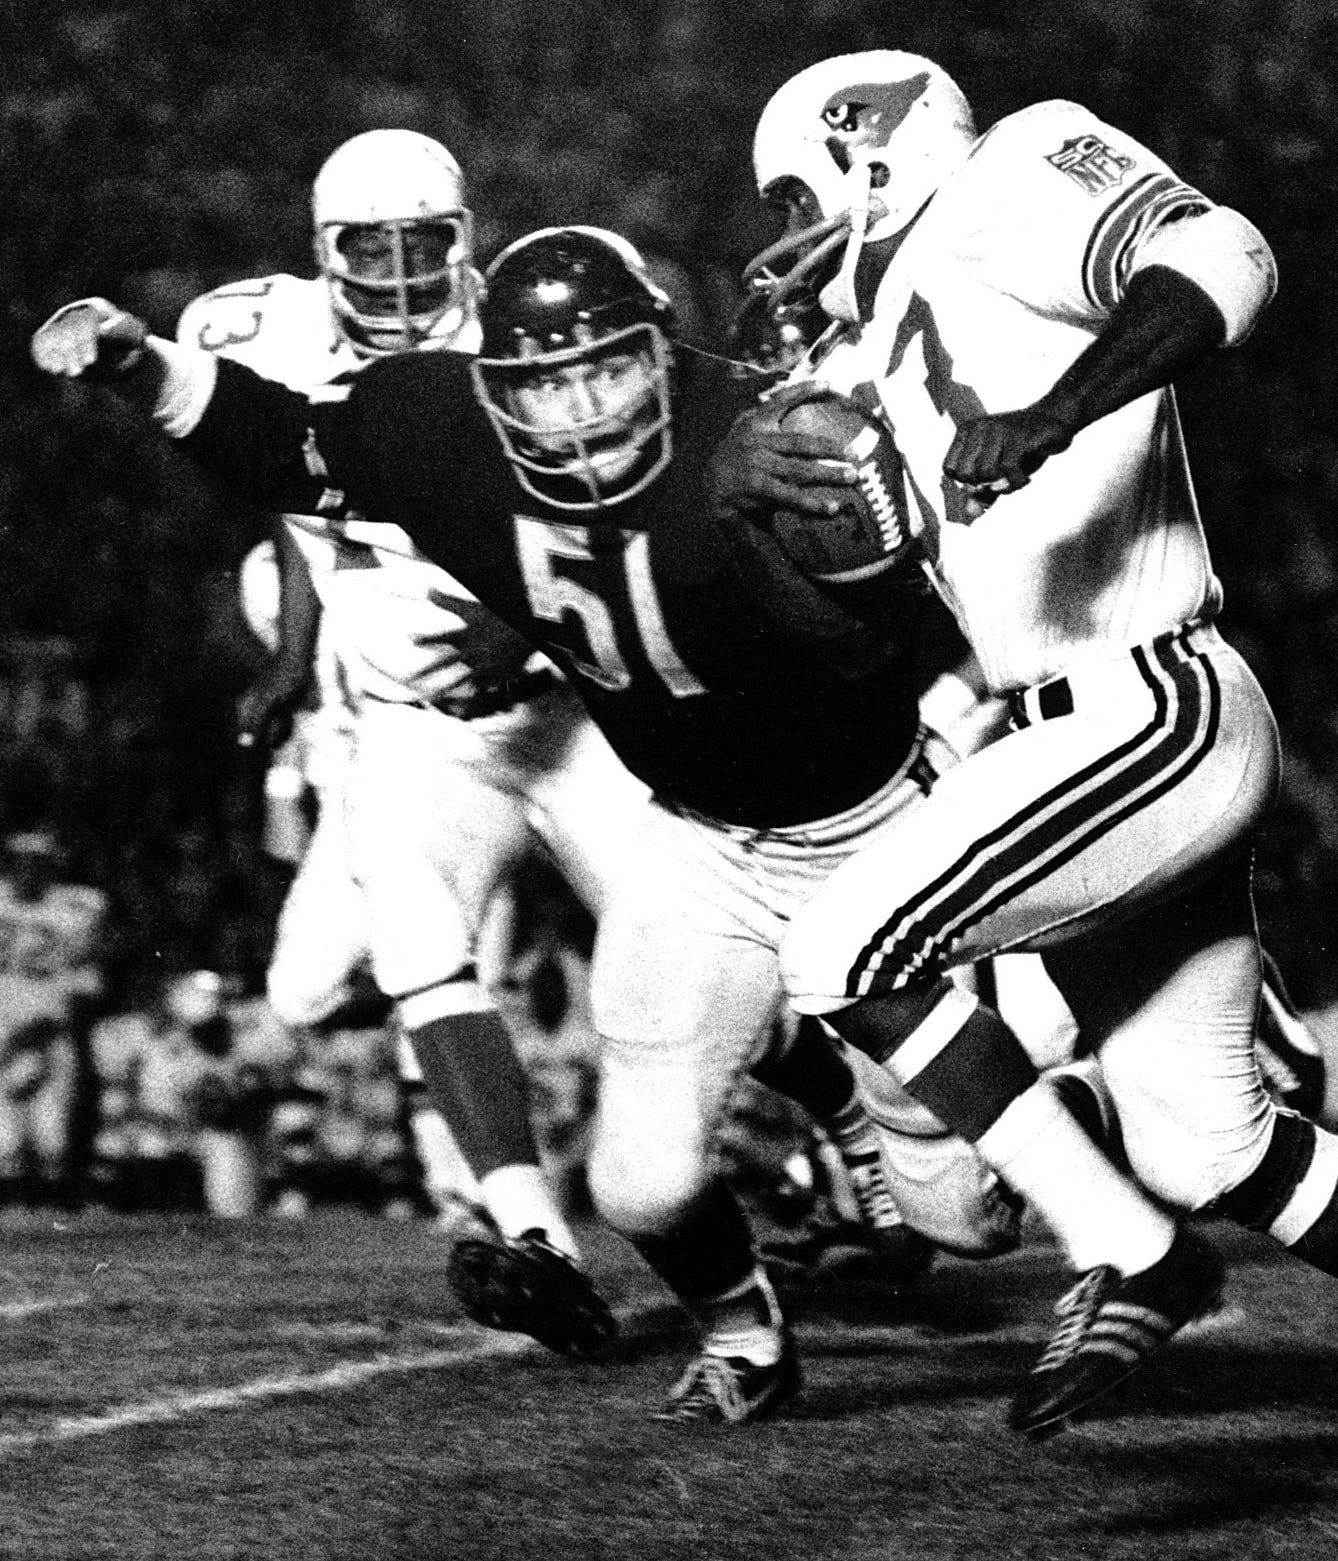 Dick Butkus - Named the most-feared tackler of all-time by NFL Films (it's true, Google it).